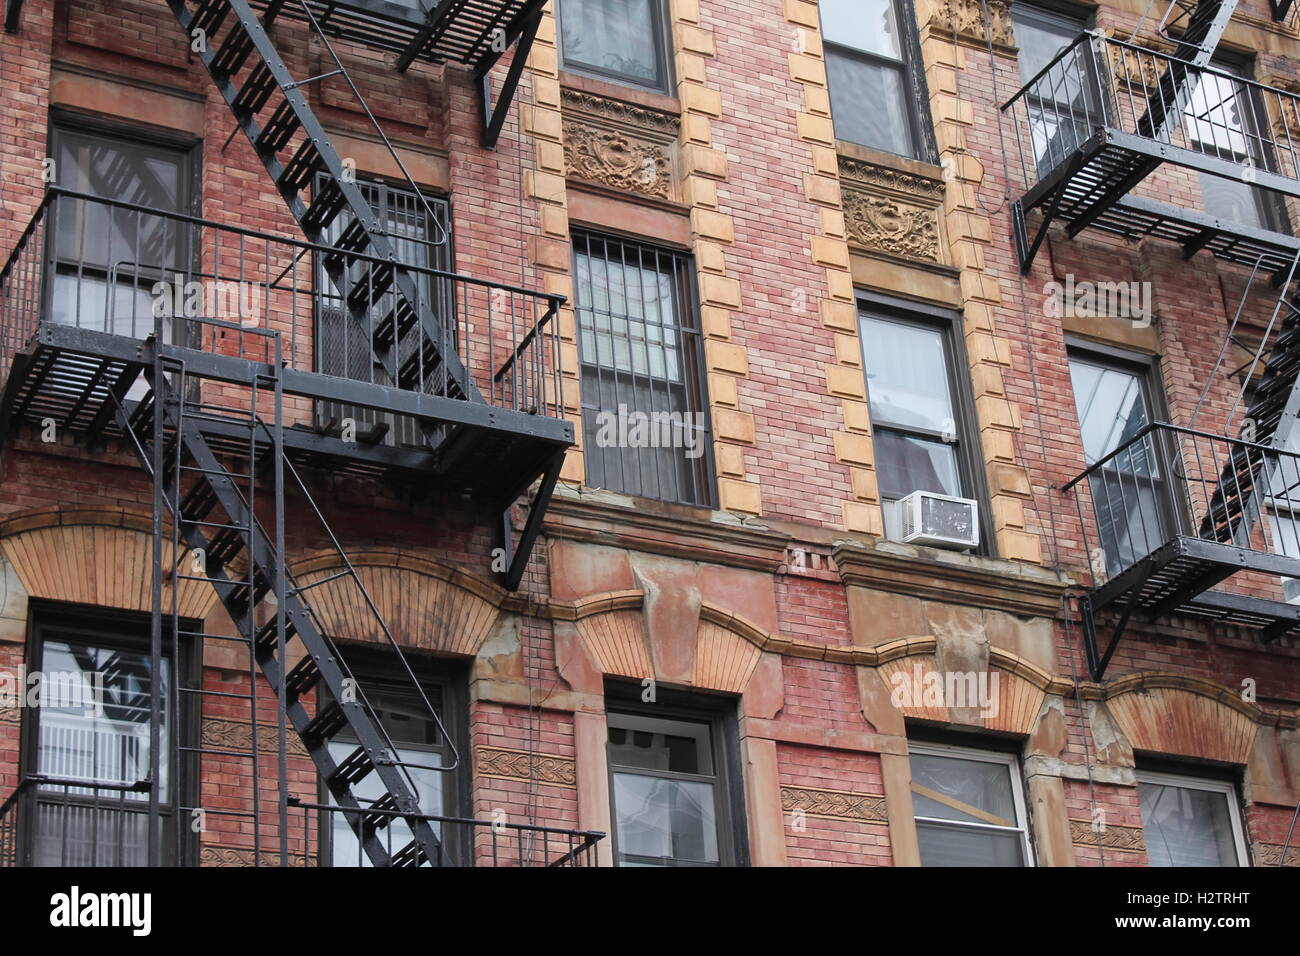 Red Brick Apartment Building Stock Photos & Red Brick Apartment ...